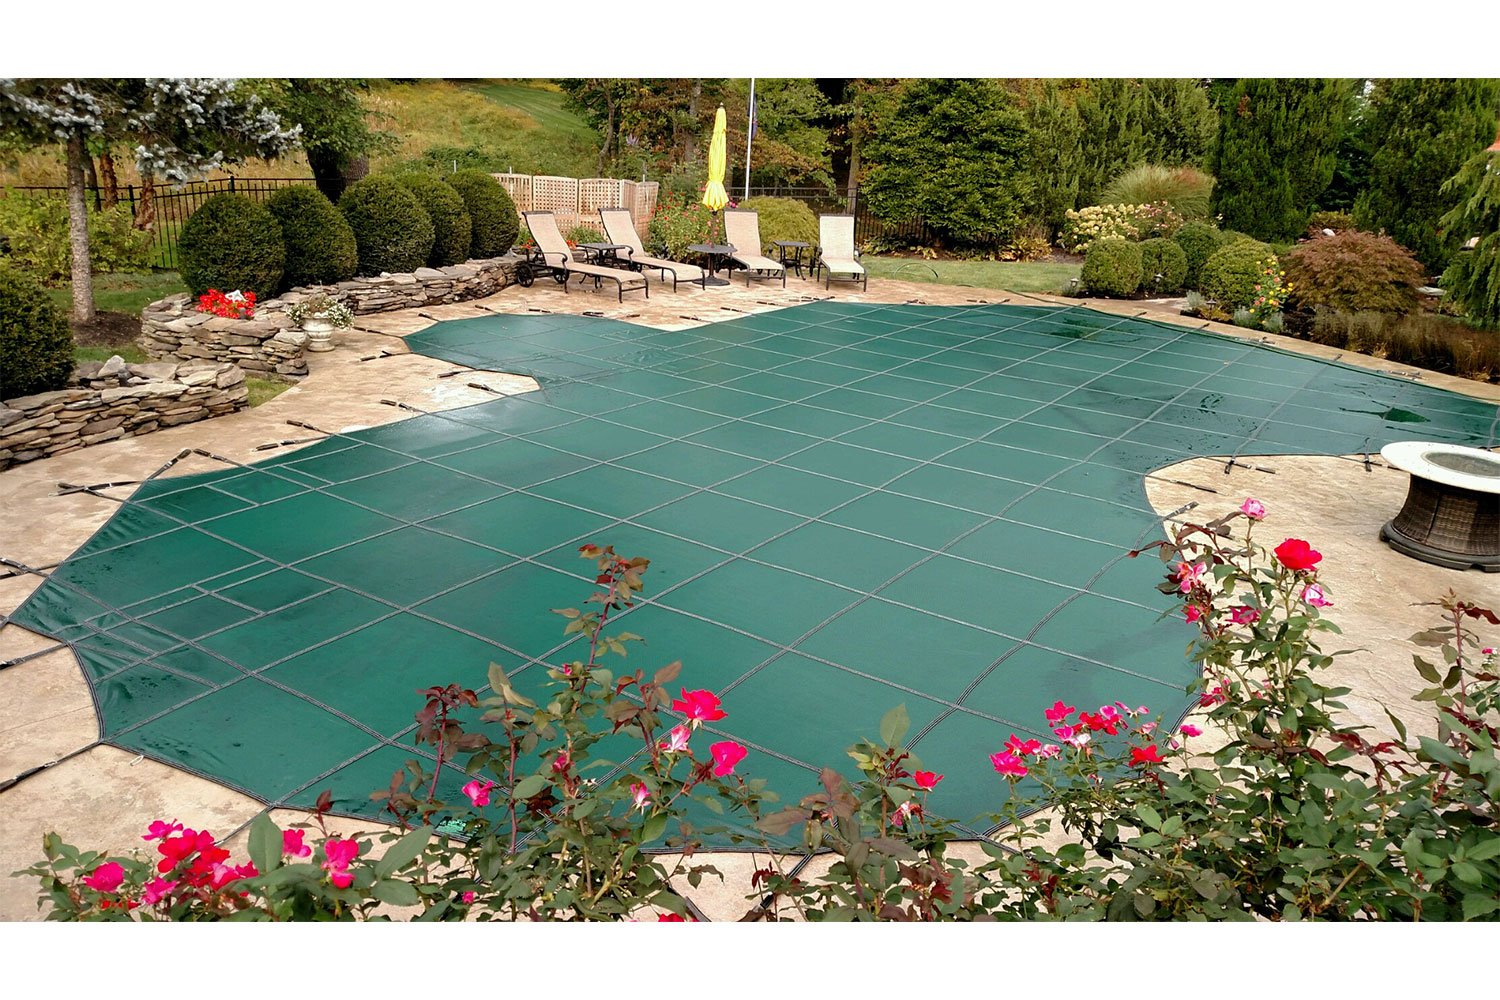 After: Always be sure to protect your beautiful investment with a high quality pool cover during the colder months